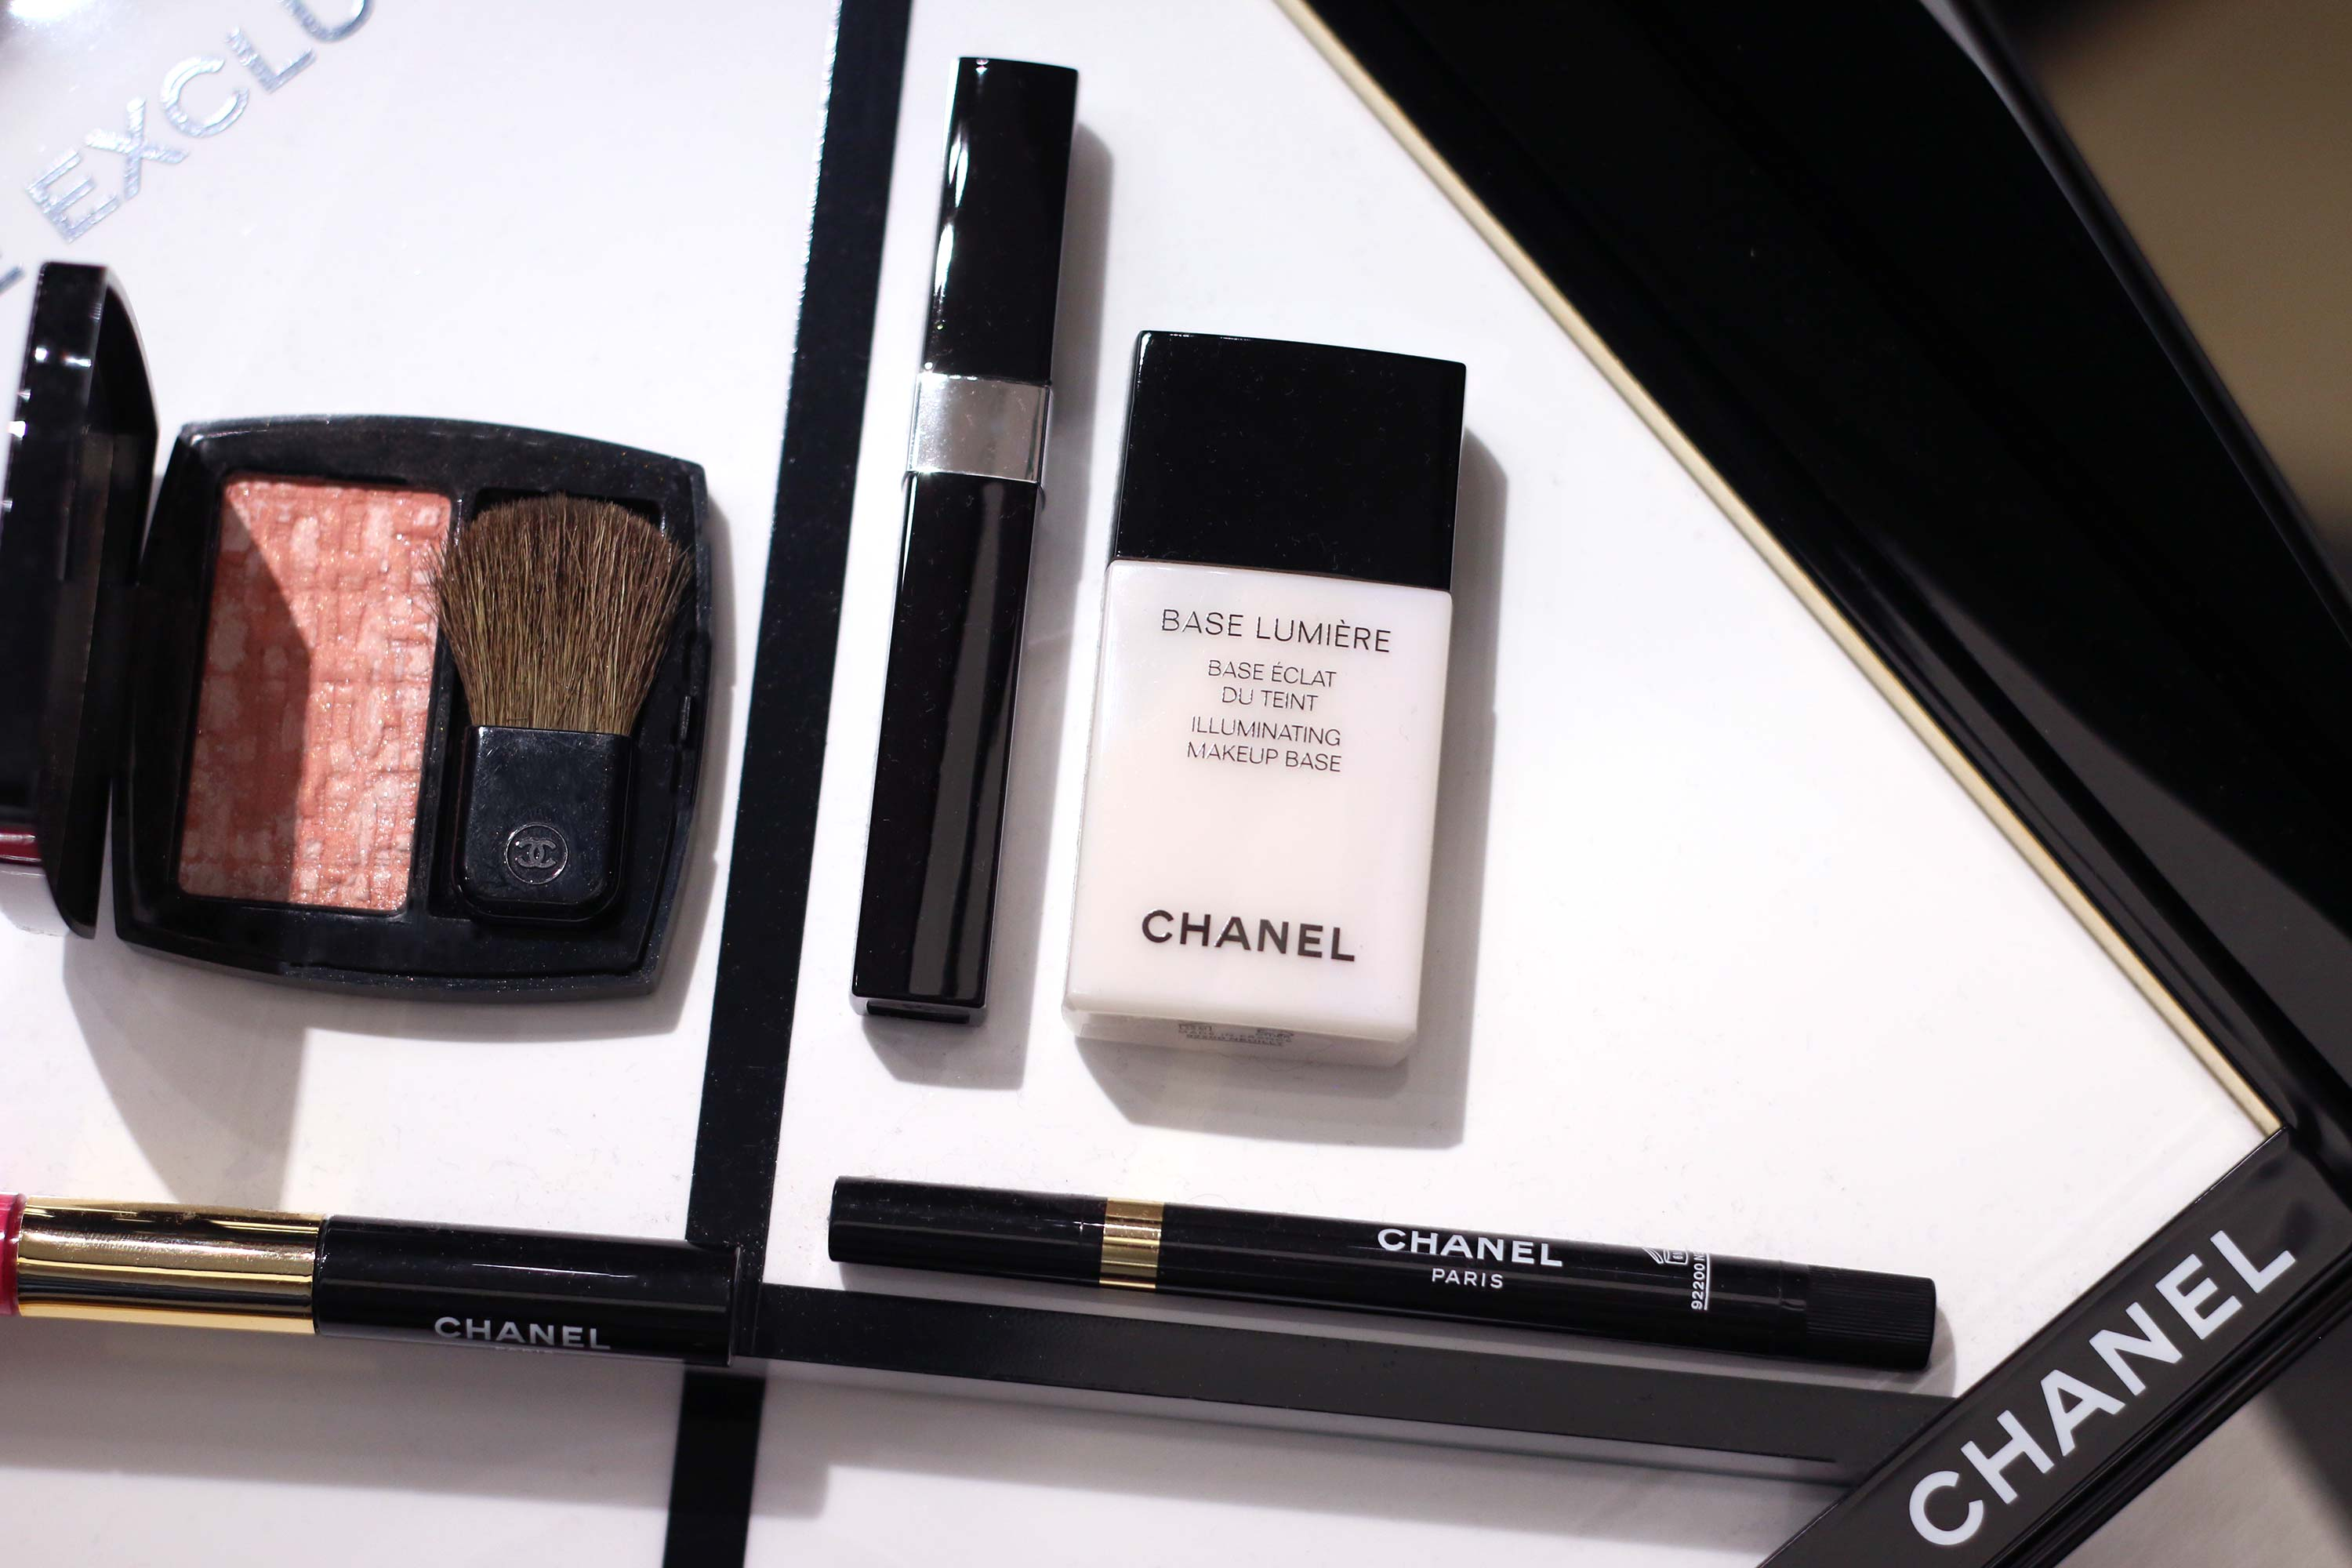 chanel-beauty-boutique-hamburg-12